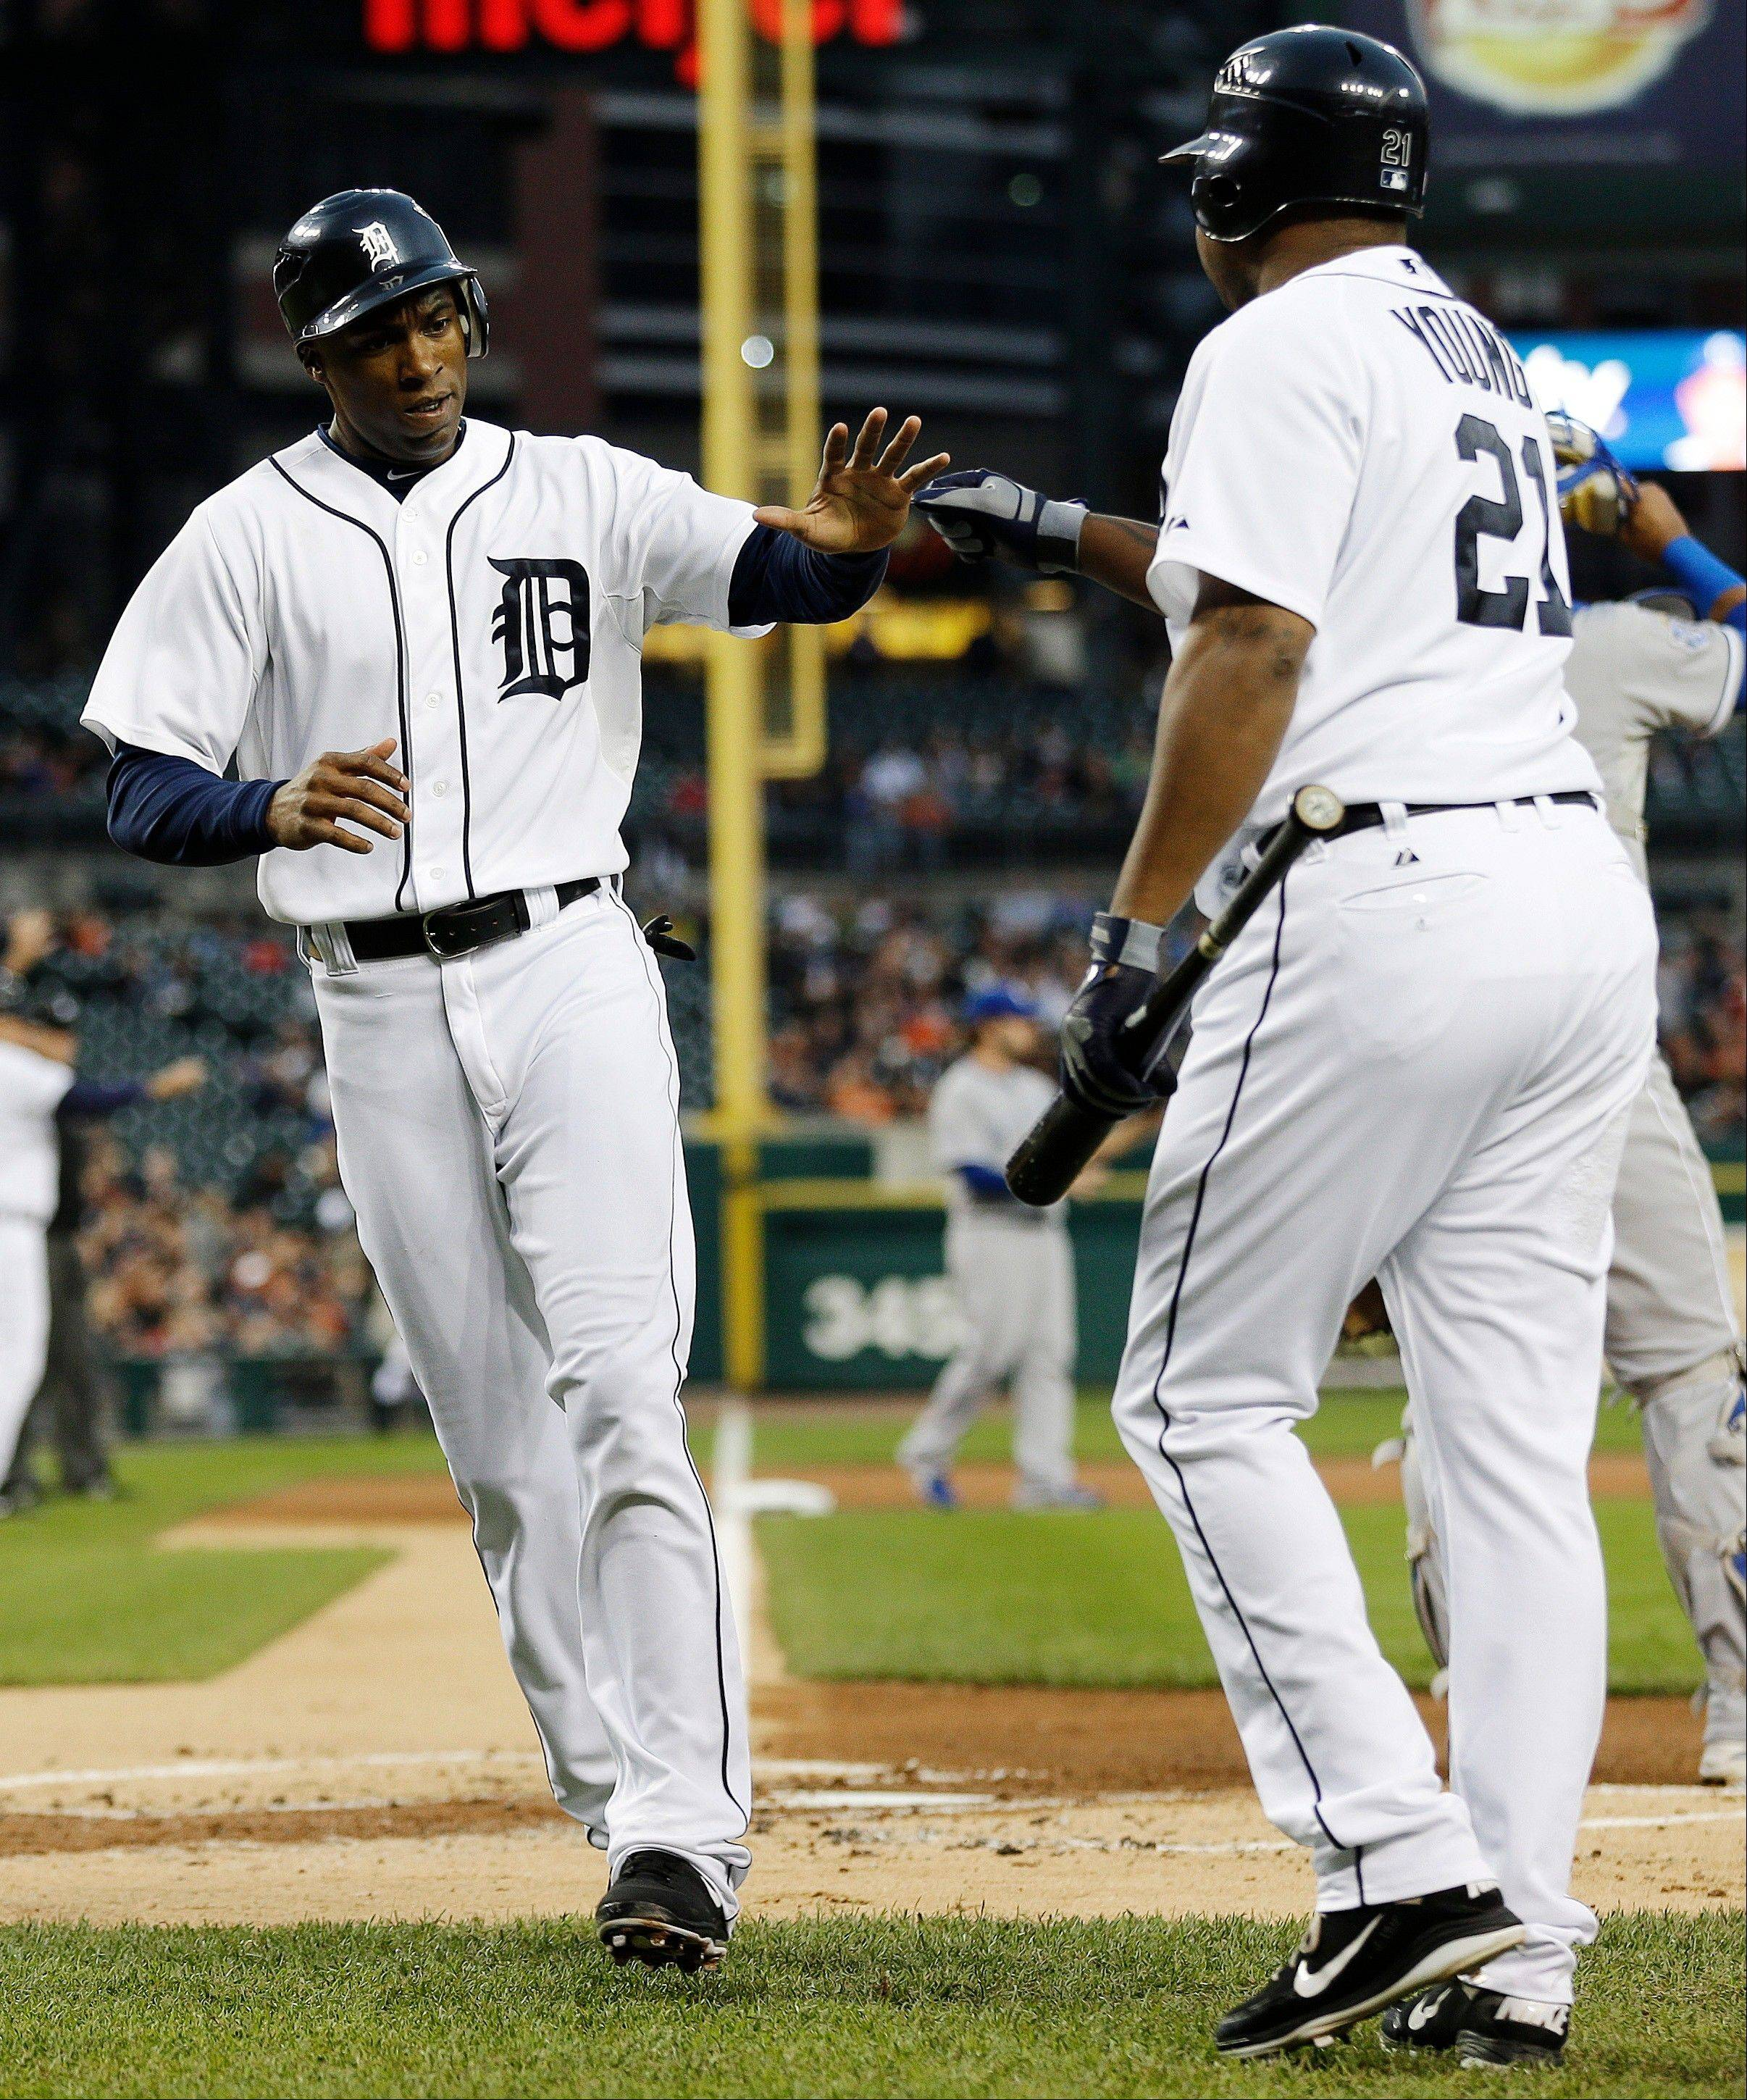 Detroit Tigers center fielder Austin Jackson, left, is congratulated by Delmon Young after scoring on an RBI single by Prince Fielder Tuesday against the Kansas City Royals.